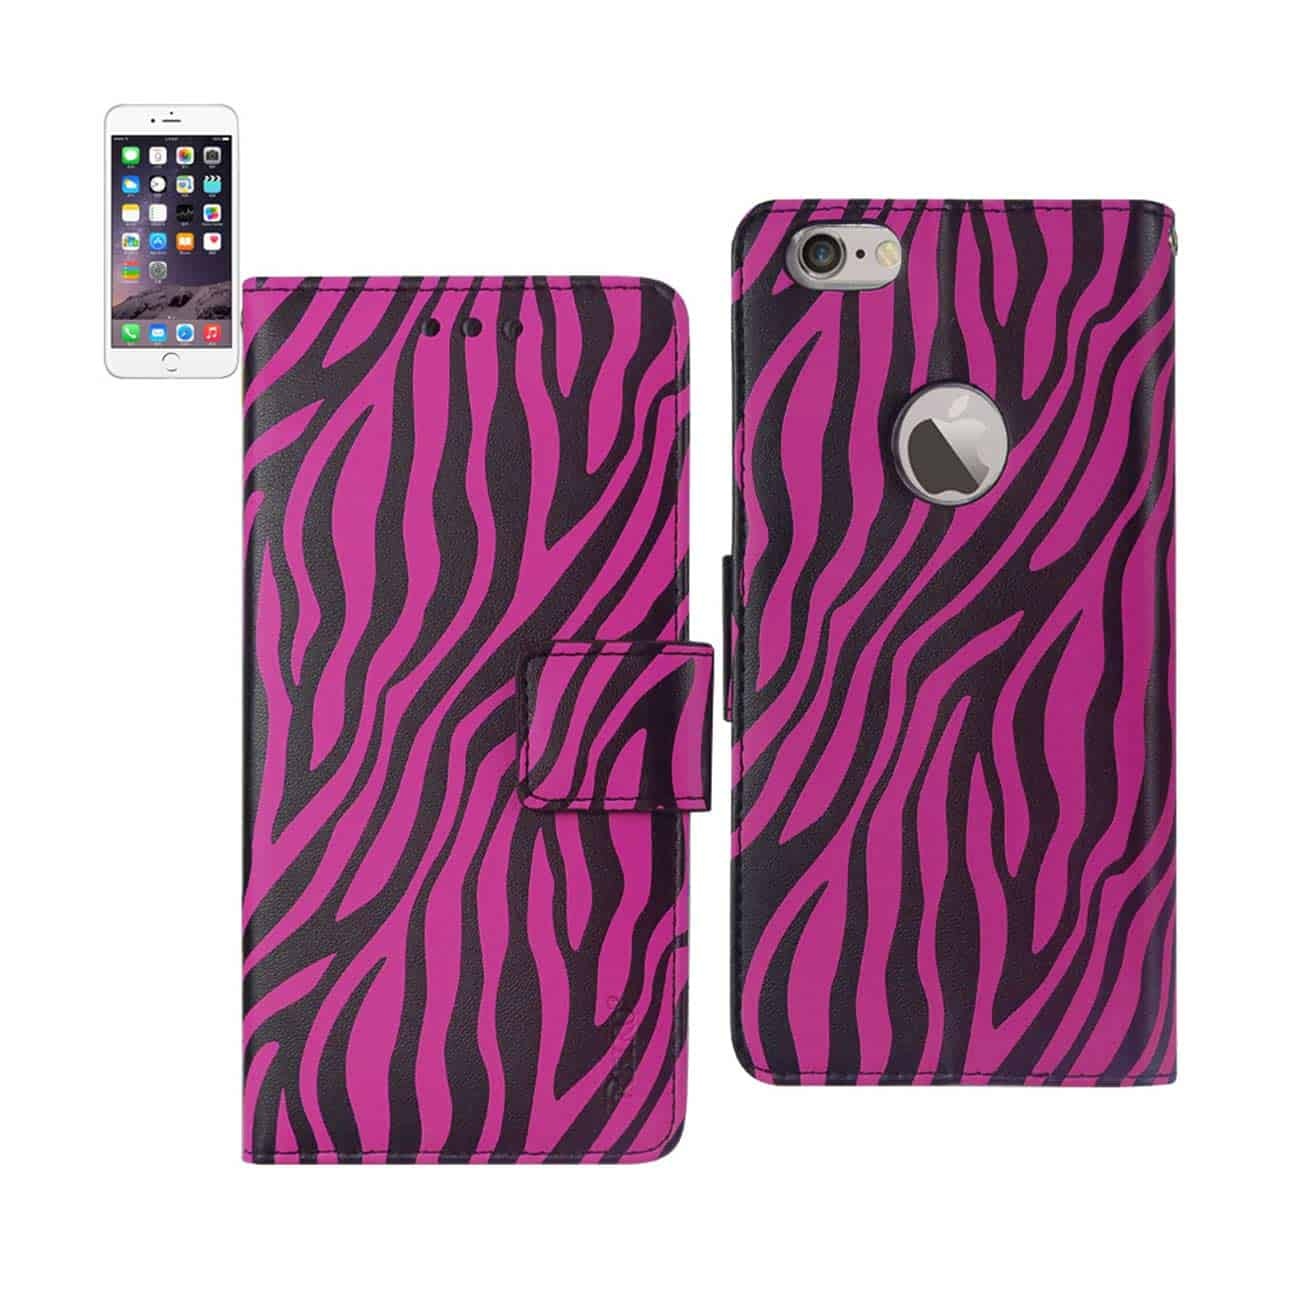 IPHONE 6 PLUS 3-IN-1 ANIMAL ZEBRA PRINT WALLET CASE IN HOT PINK